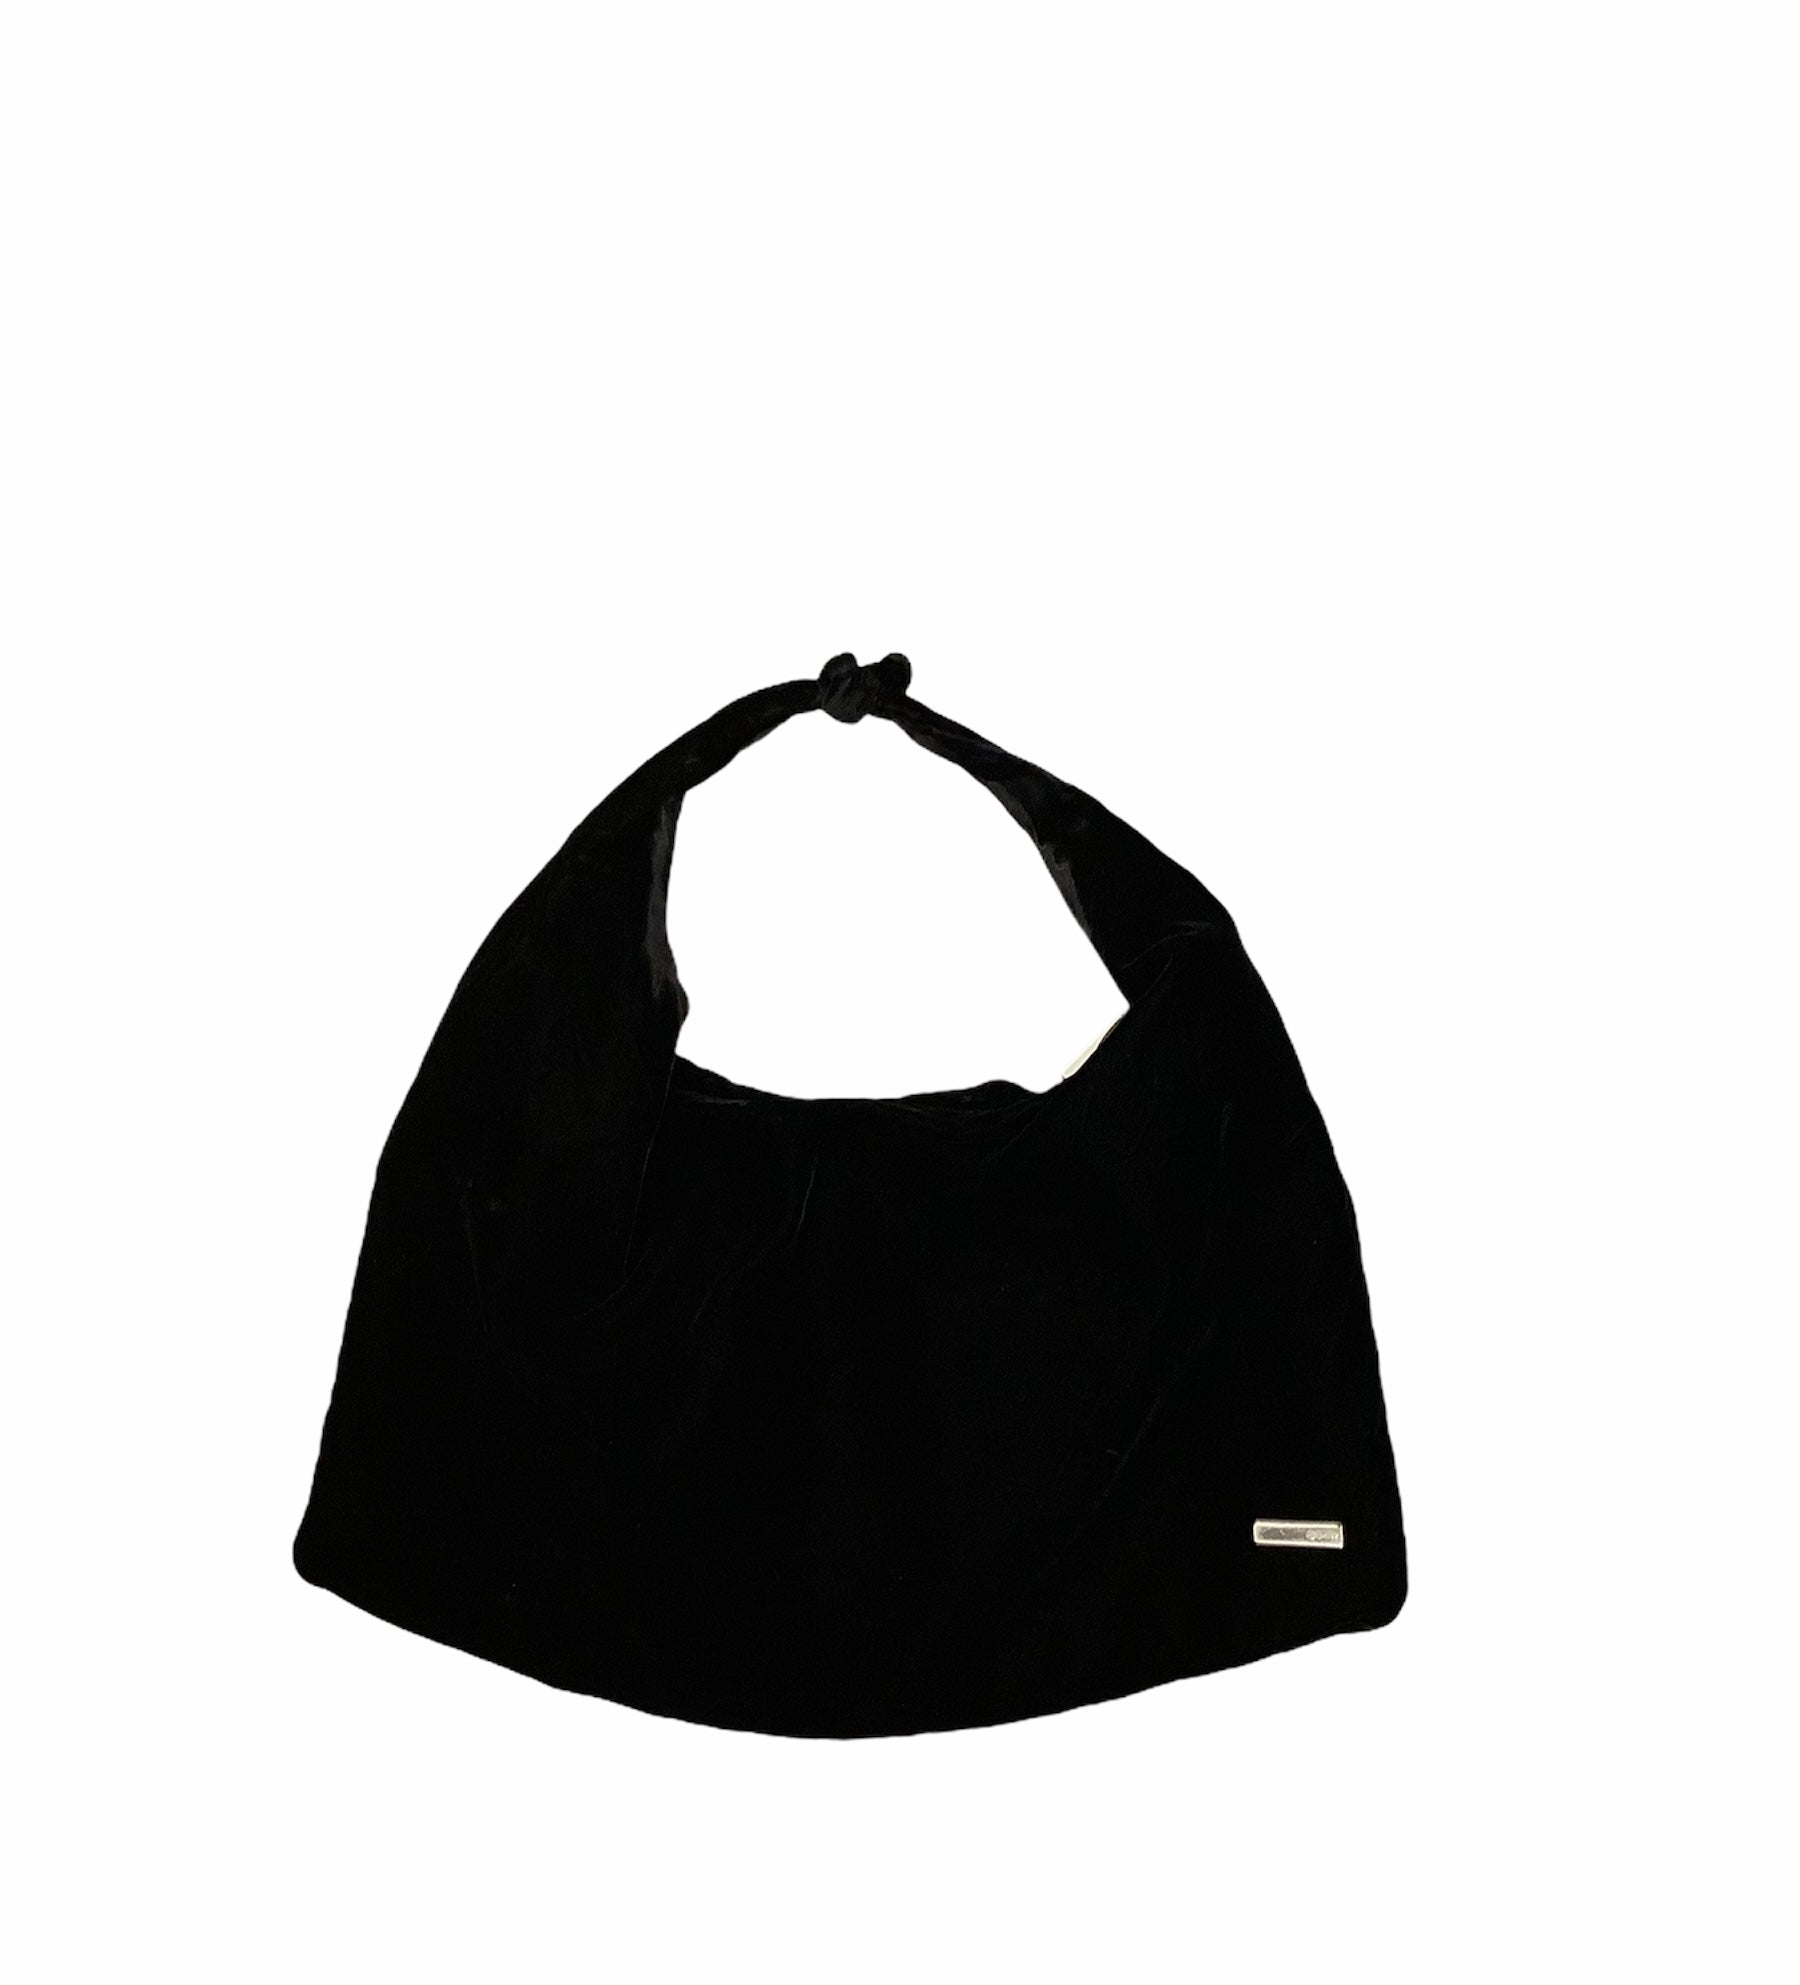 DKNY Tie Bag - <P>BLACK VELVET TOTE BAG WITH A KNOT TIE AT THE TOP OF THE STRAP (SEE PHOTOS)</P> <P>COLOR: BLACK</P>